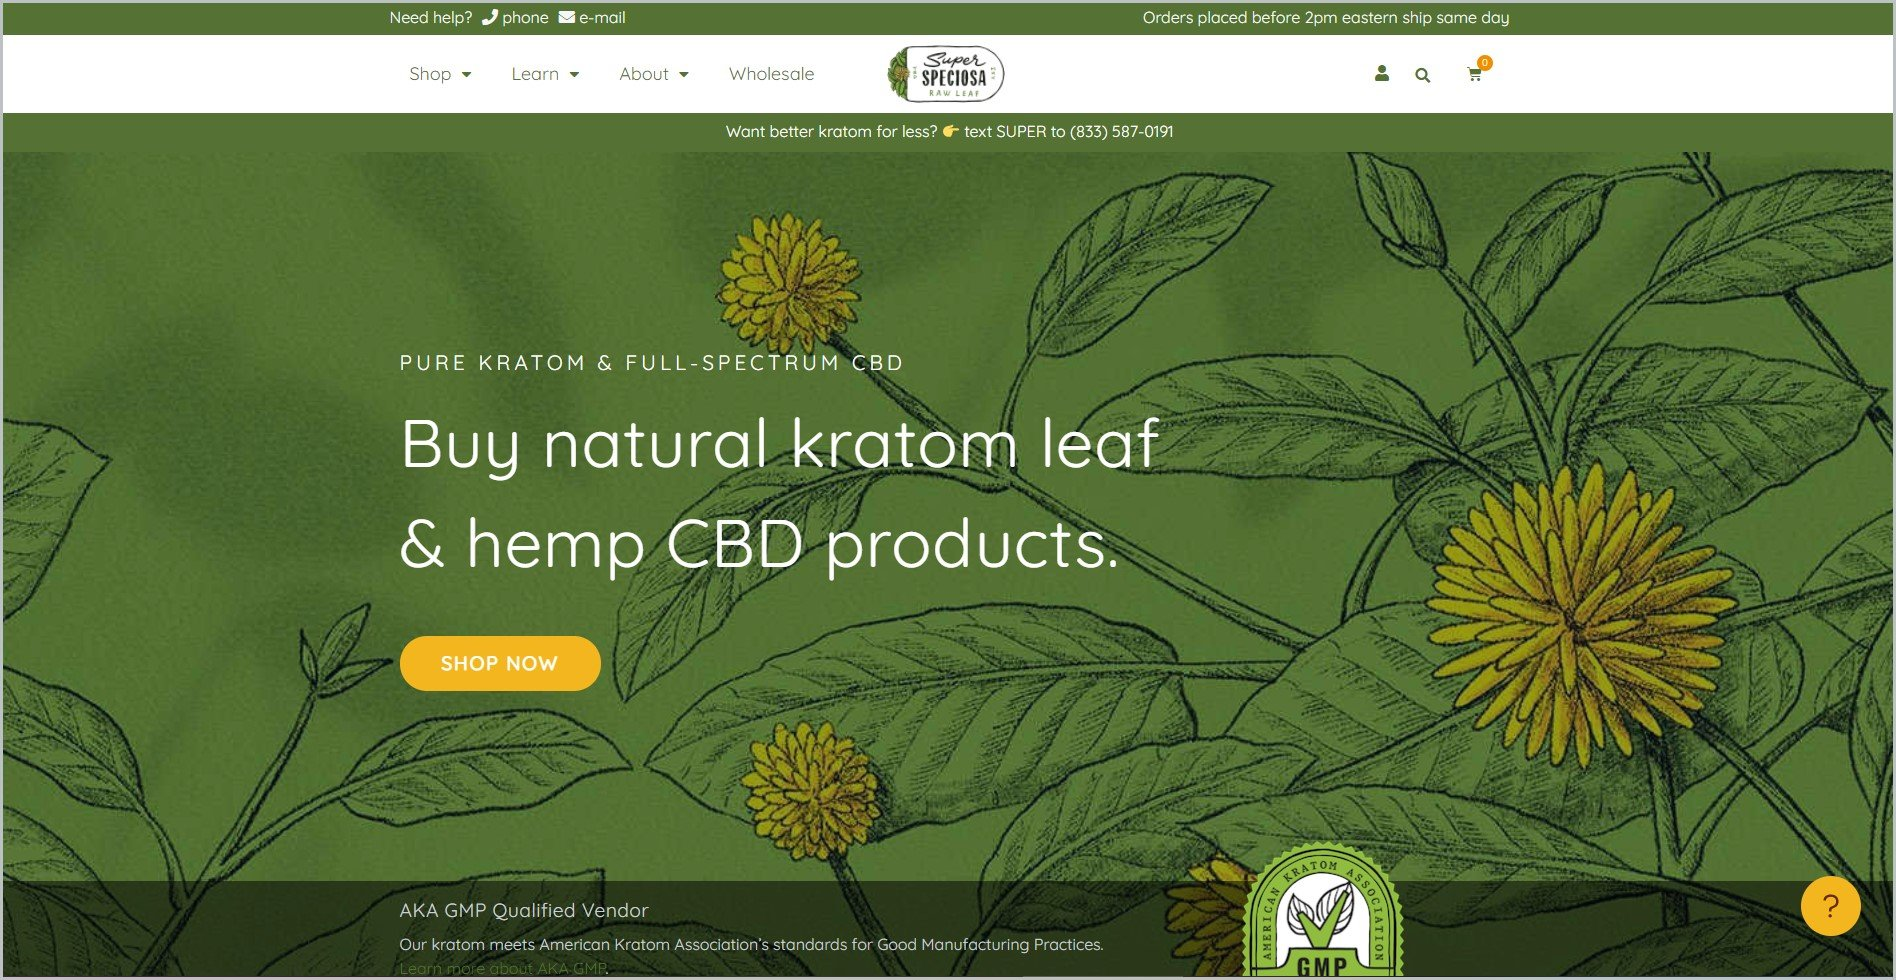 screenshot of Super Speciosa homepage, with white header bearing the website's name and main navigation menu, with a drawing of plants in dominantly green color